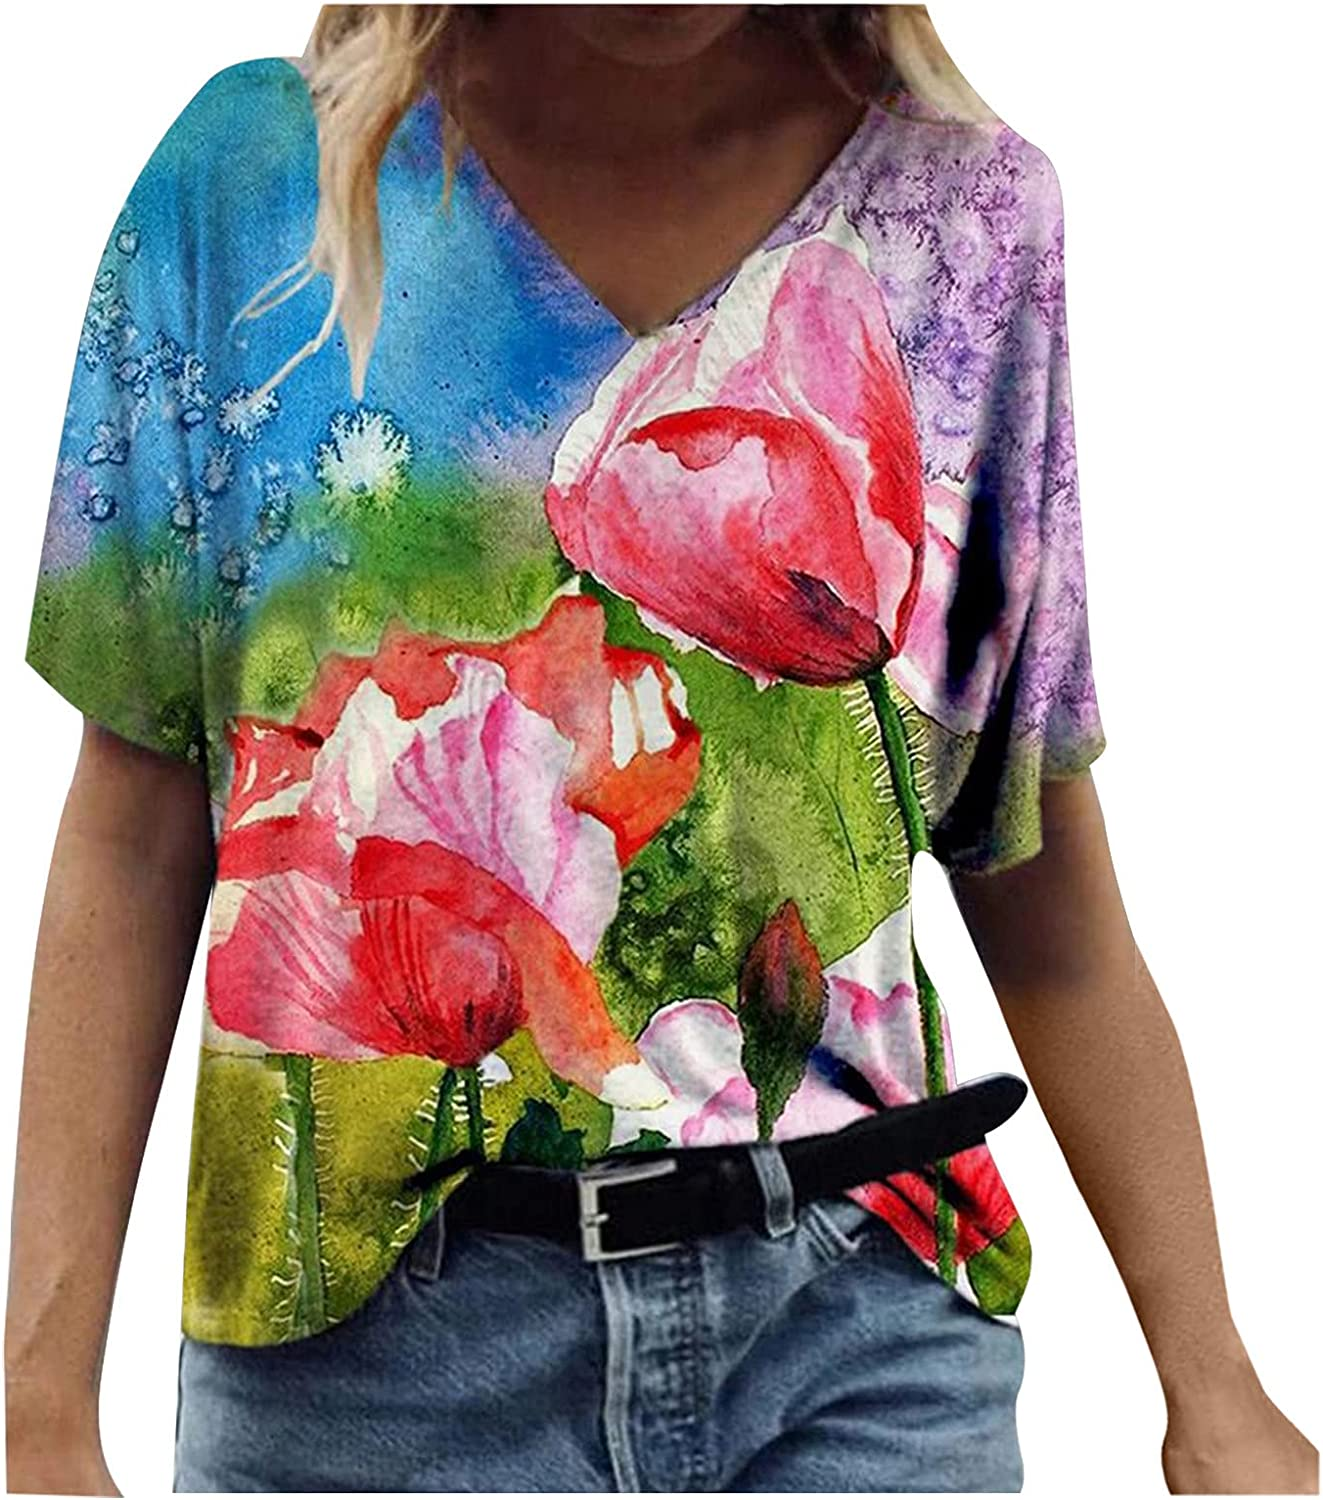 Womens Tunic Tops Short Mail order cheap Sleeve Flowy Ca Tee Shirts Limited price sale Casual Summer